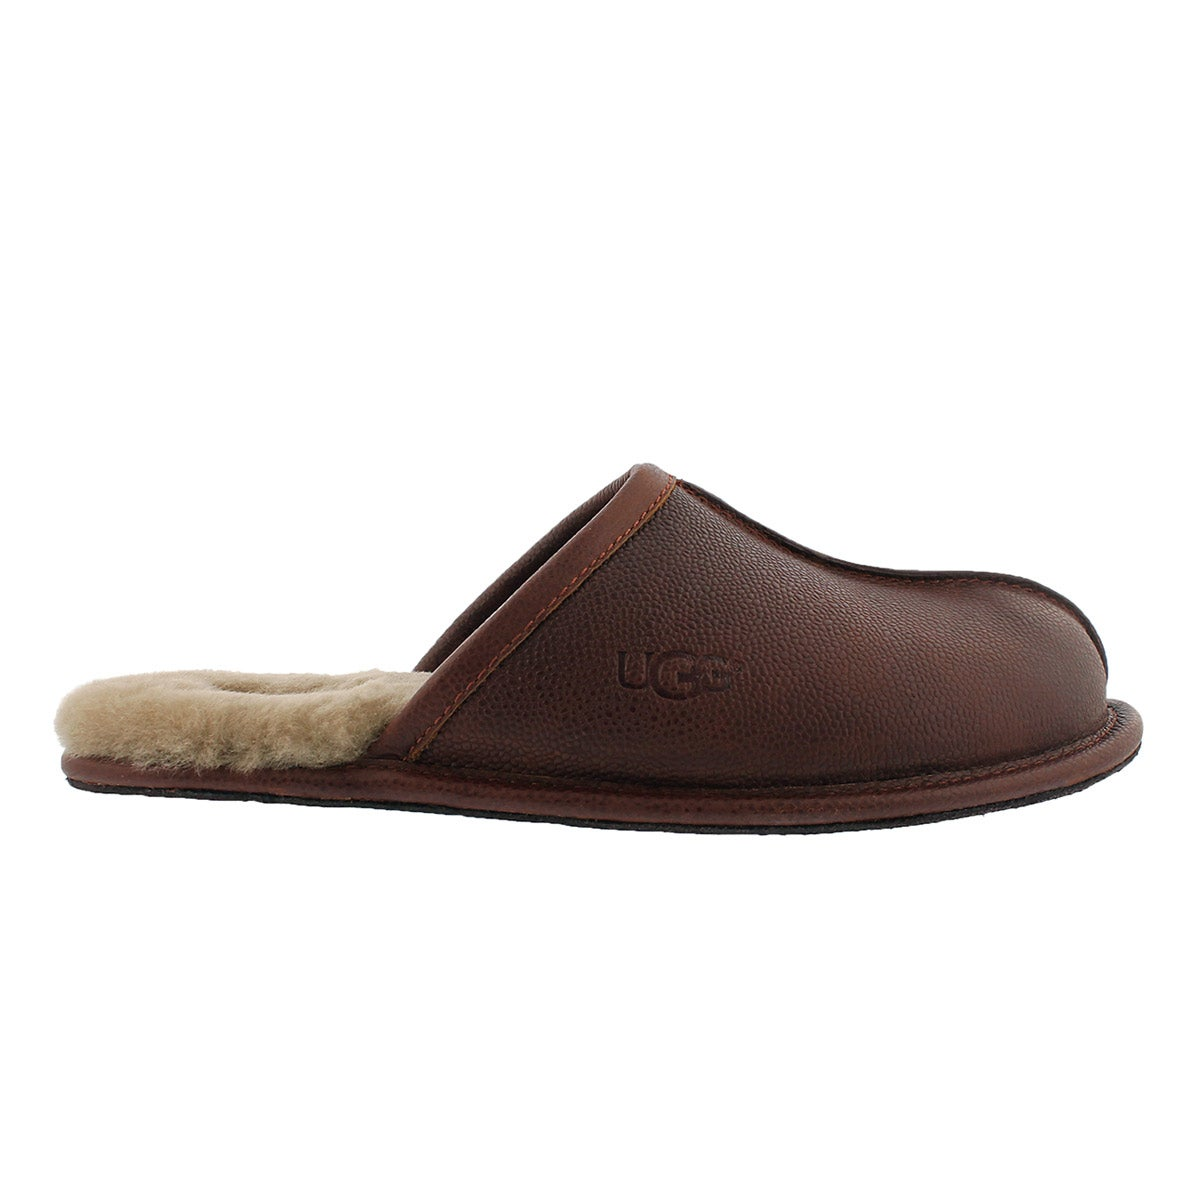 Mns Scuff Scotch Grain cognac slipper